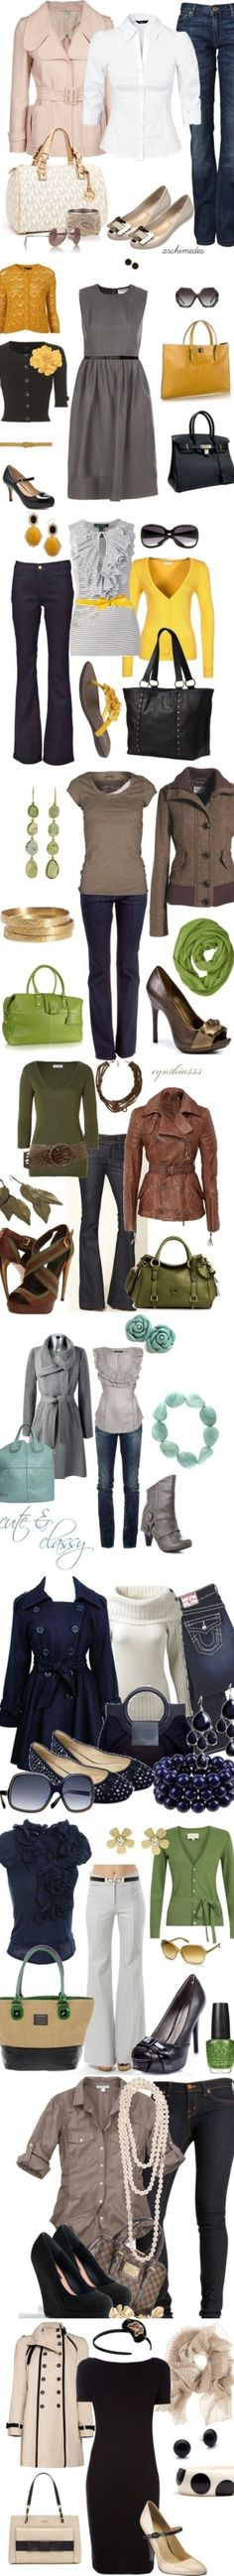 Fall Looks. I wish I had all of these